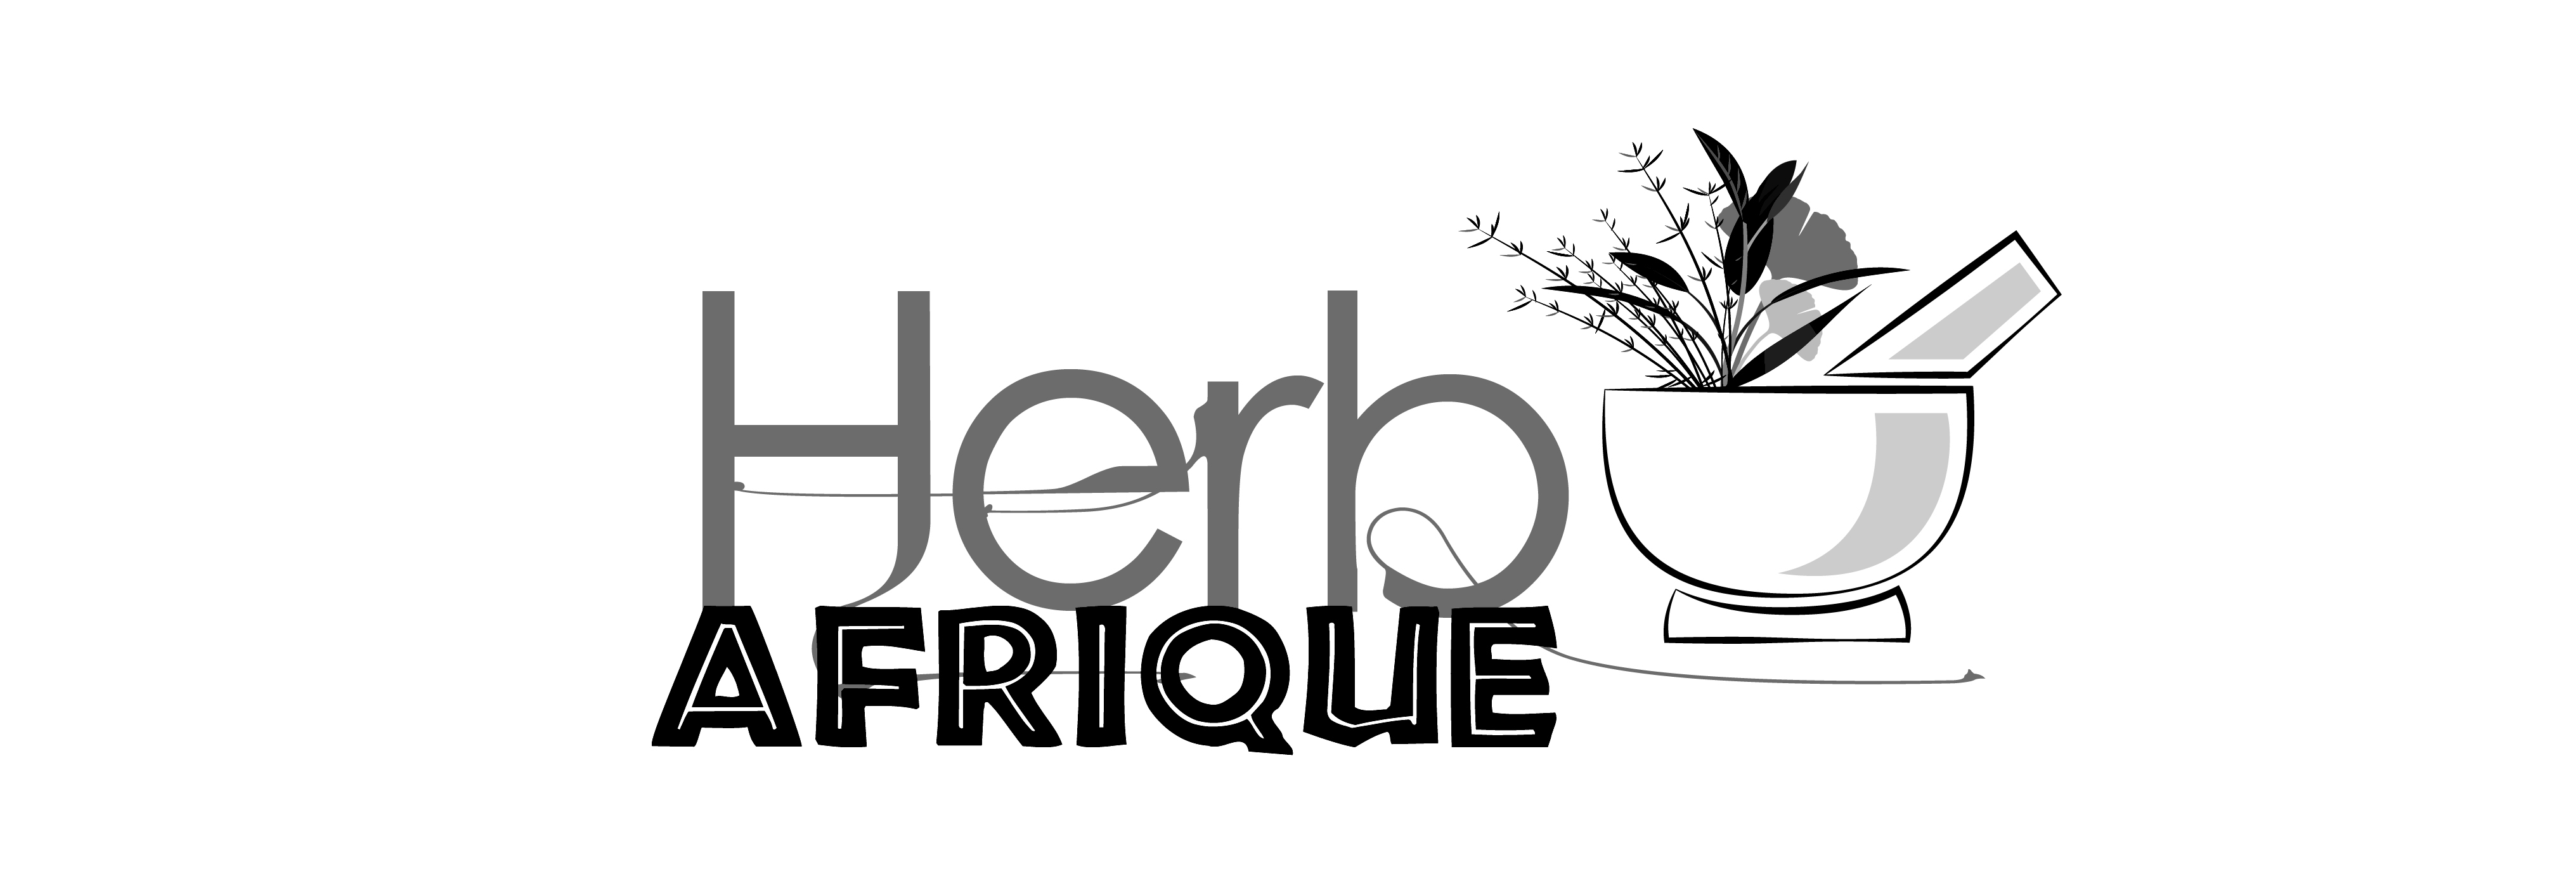 Herb Afrique | Odd Poppy Advertising Agency | Johannesburg | Clients